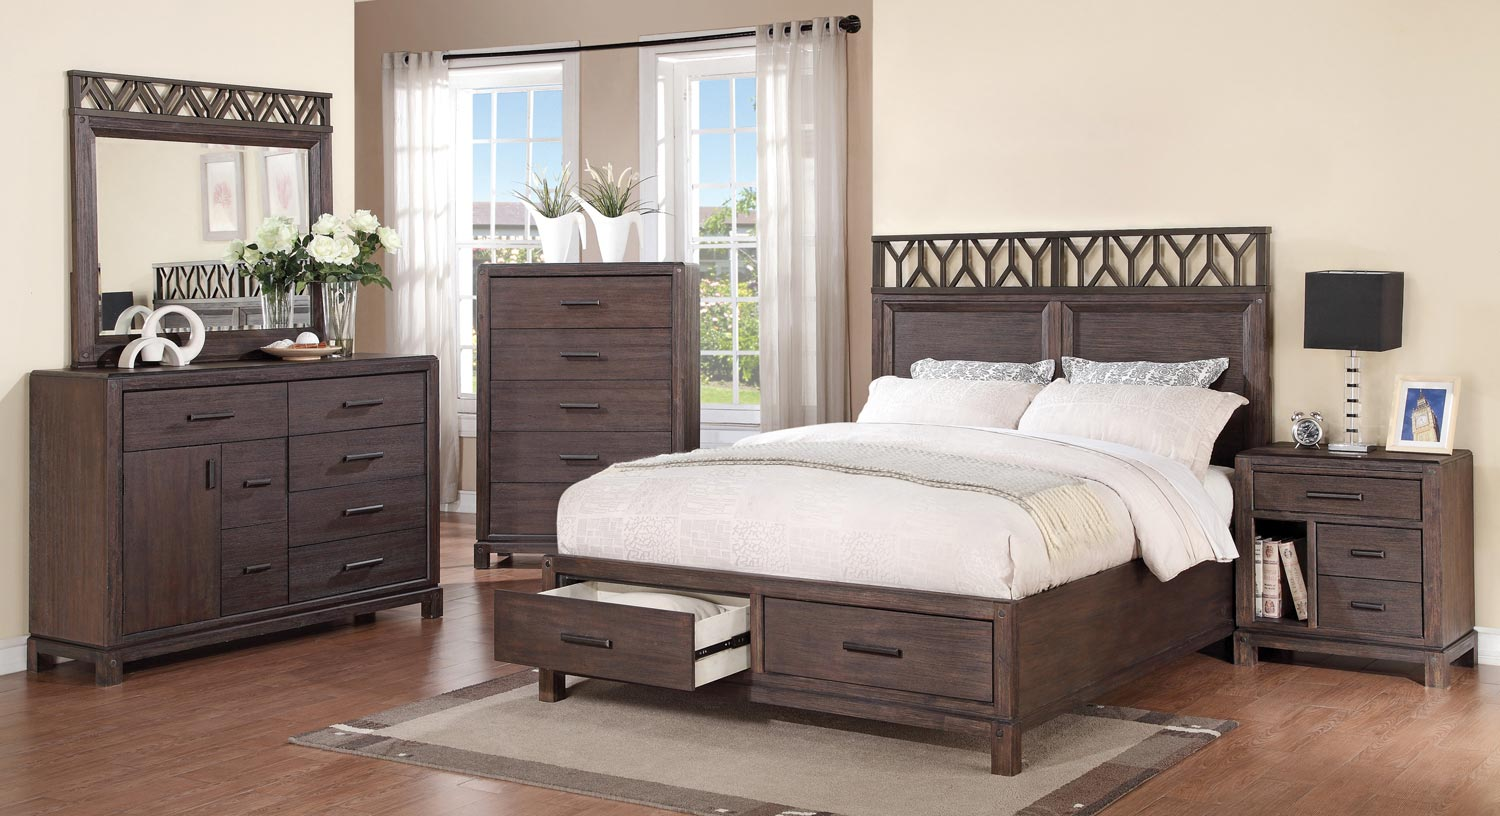 Coaster Grayson Bedroom Set Dark Coffee Bed Set at Homelement